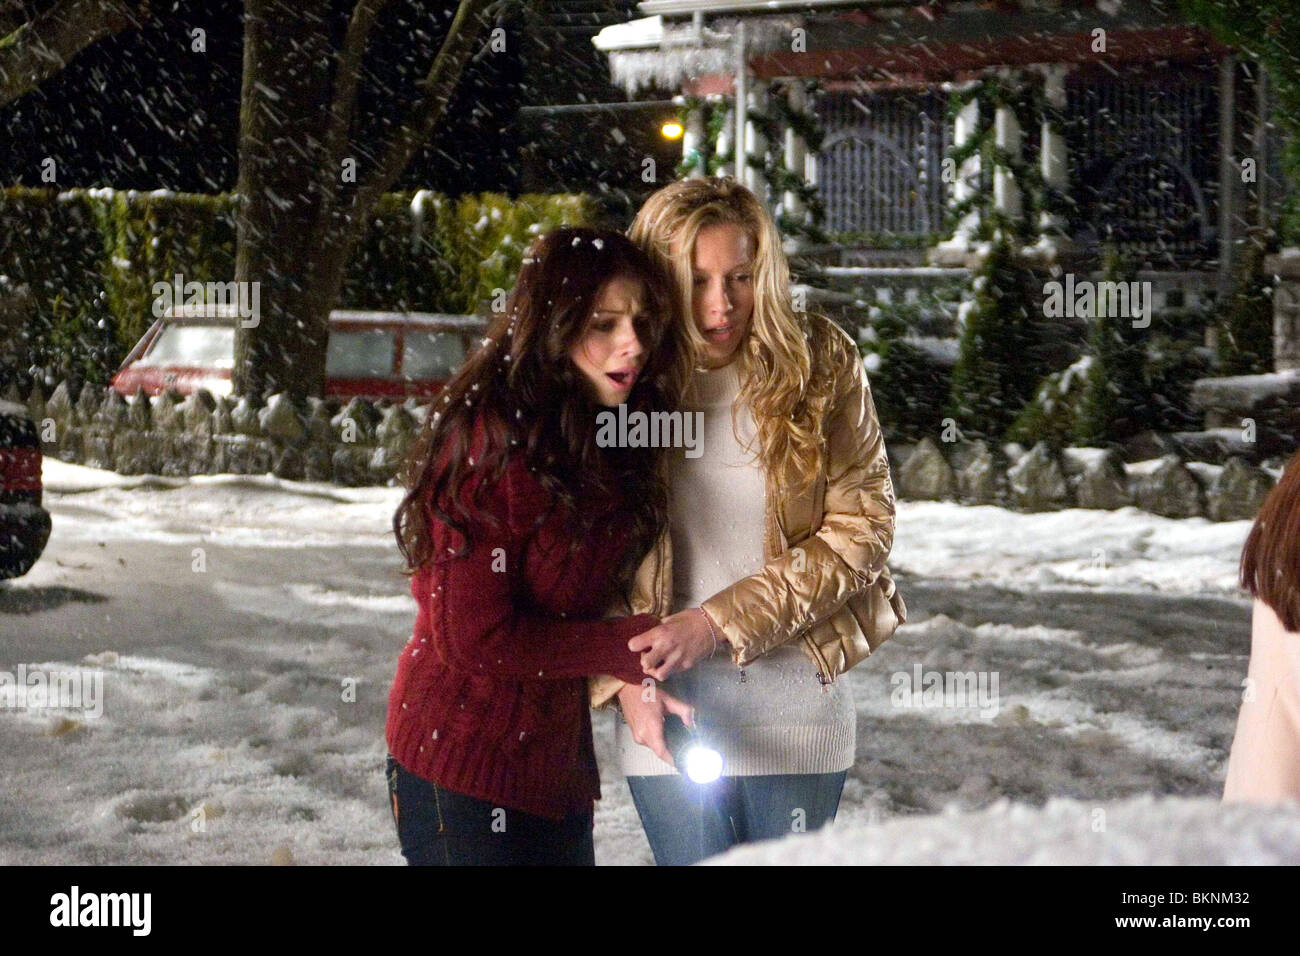 black christmas 2006 michelle trachtenberg katie cassidy bchr 001 01 stock - Black Christmas 2006 Full Movie